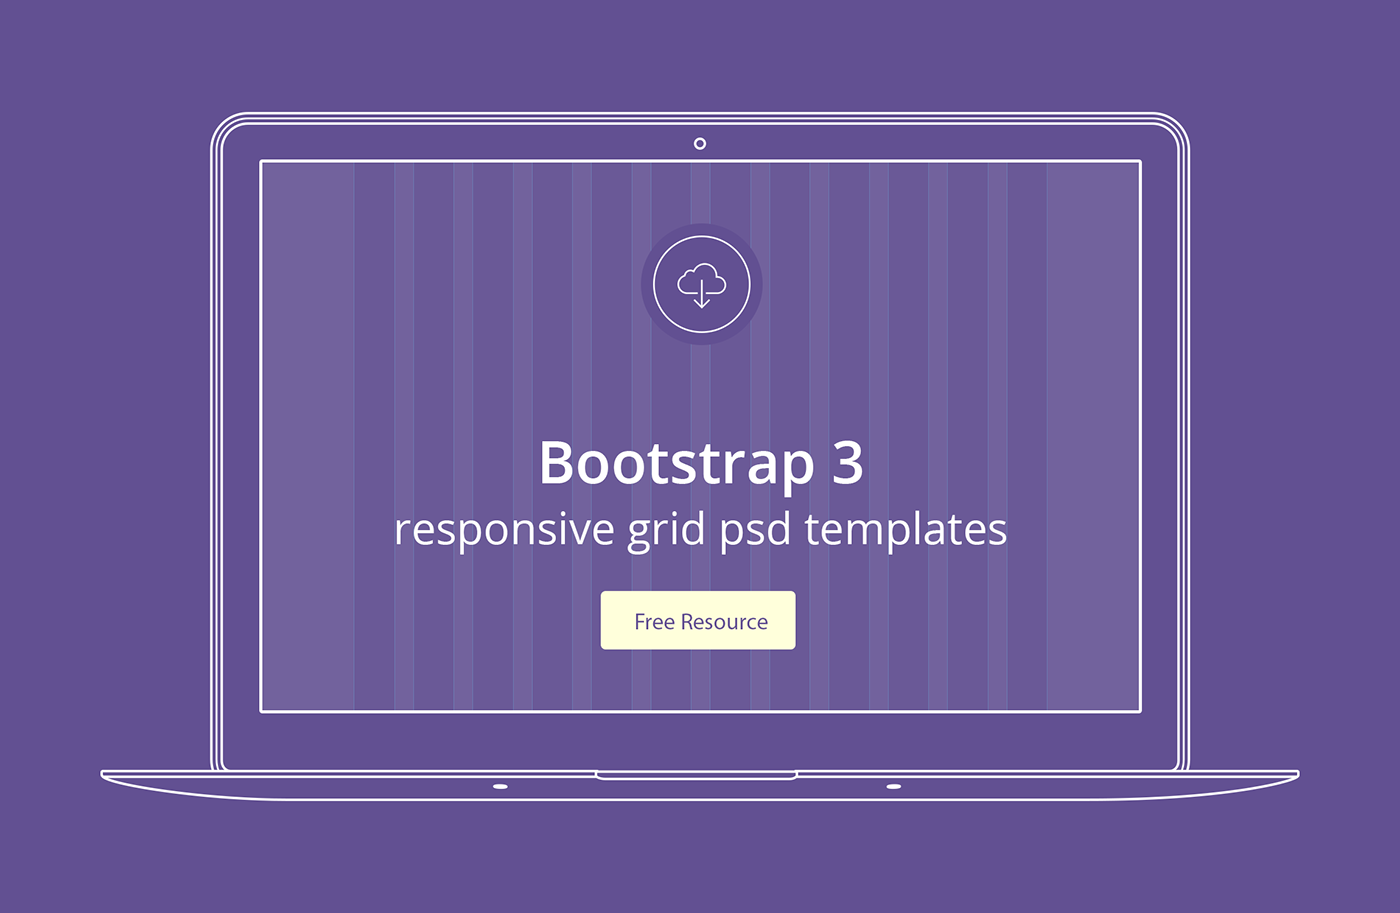 Bootstrap 3 responsive grid psd templates on Behance